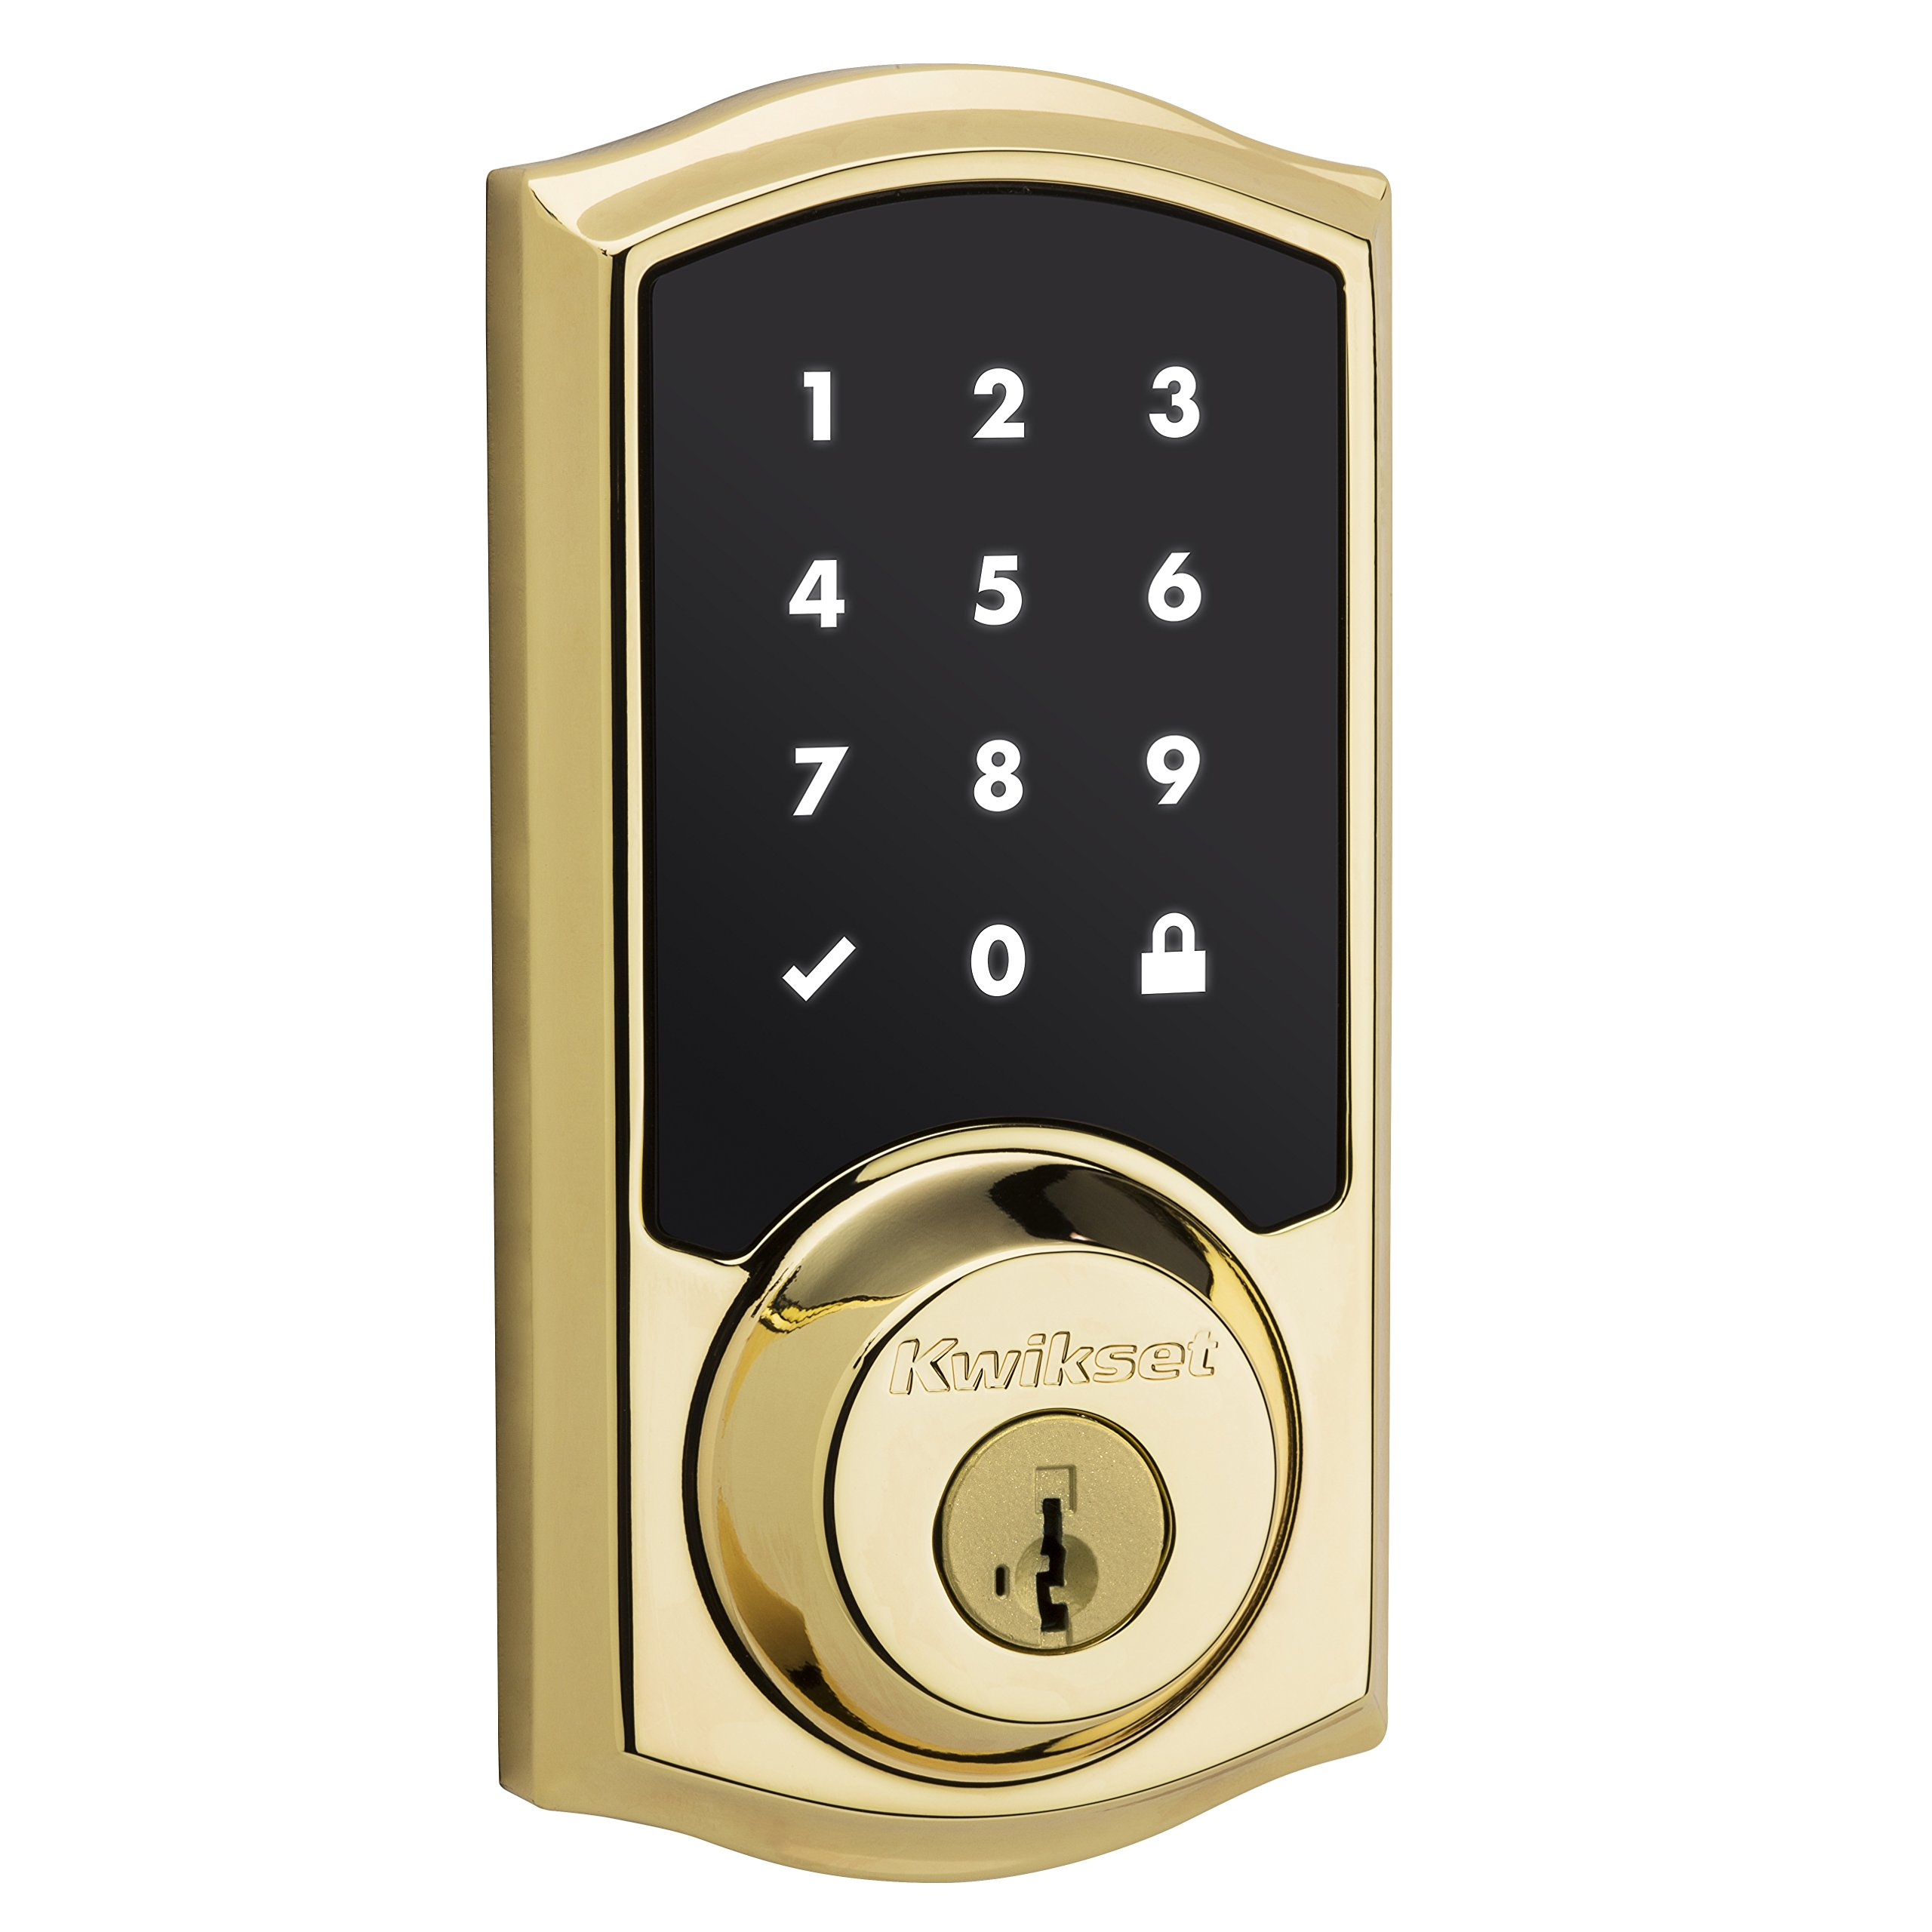 Kwikset 99160-007 SmartCode ZigBee Touchscreen Smart Lock works with Echo Plus & Alexa, featuring SmartKey, Lifetime Polished Brass by Kwikset (Image #1)